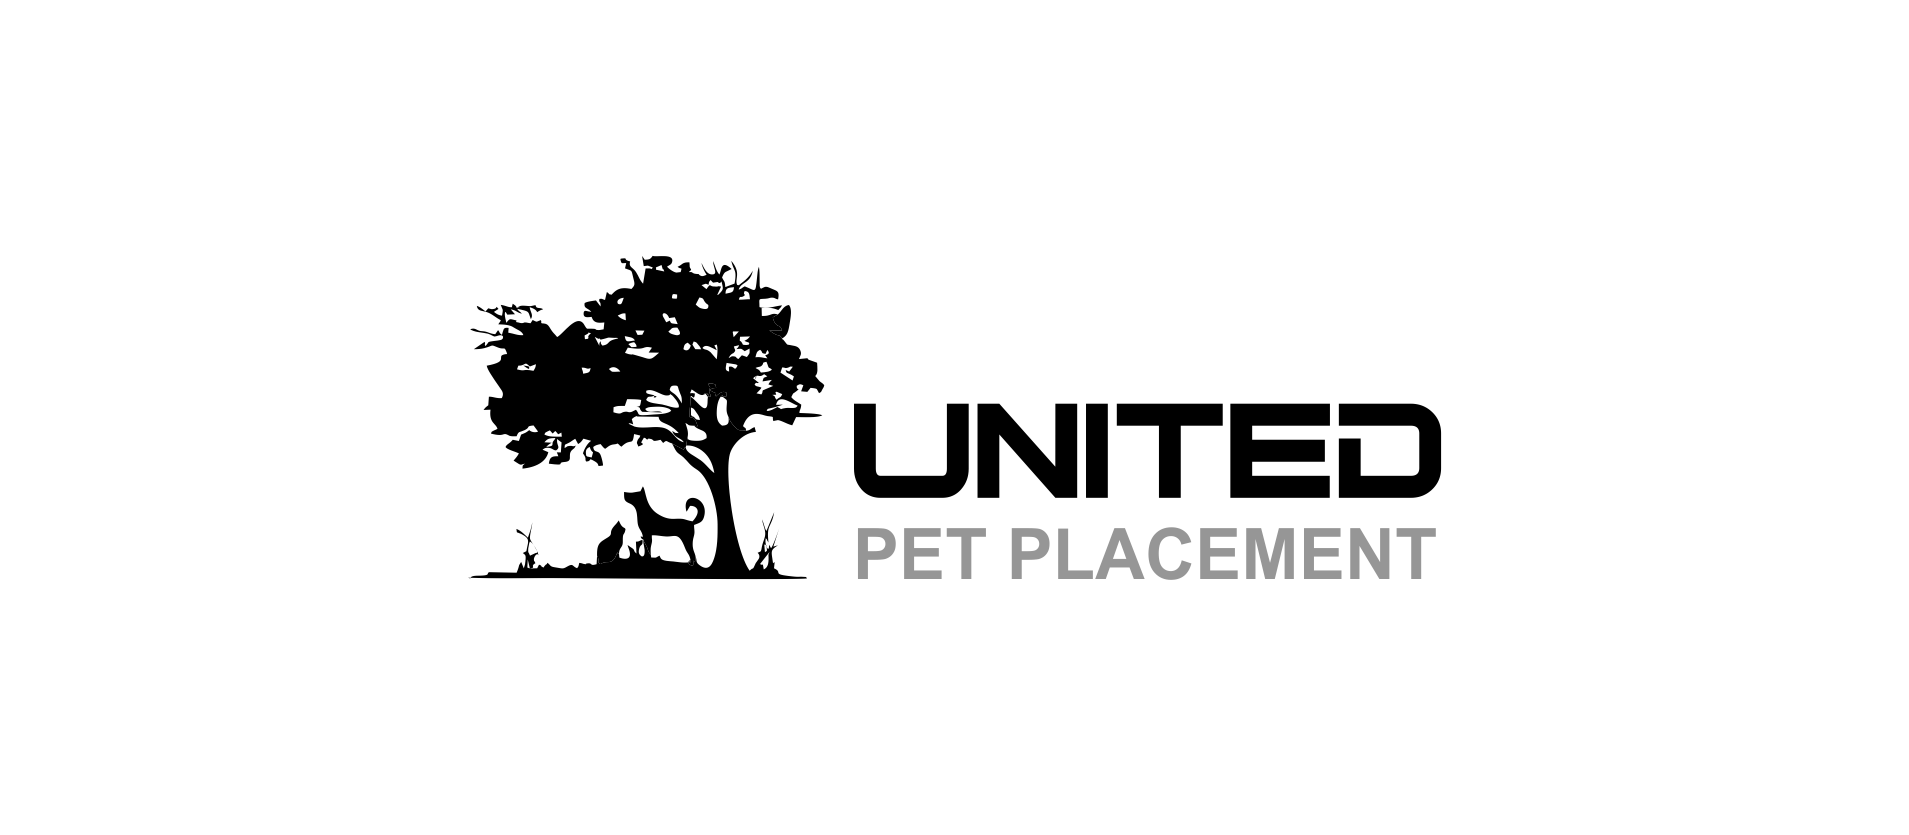 Logo Design by Muhammad Aslam - Entry No. 58 in the Logo Design Contest Artistic Logo Design for united pet placement.